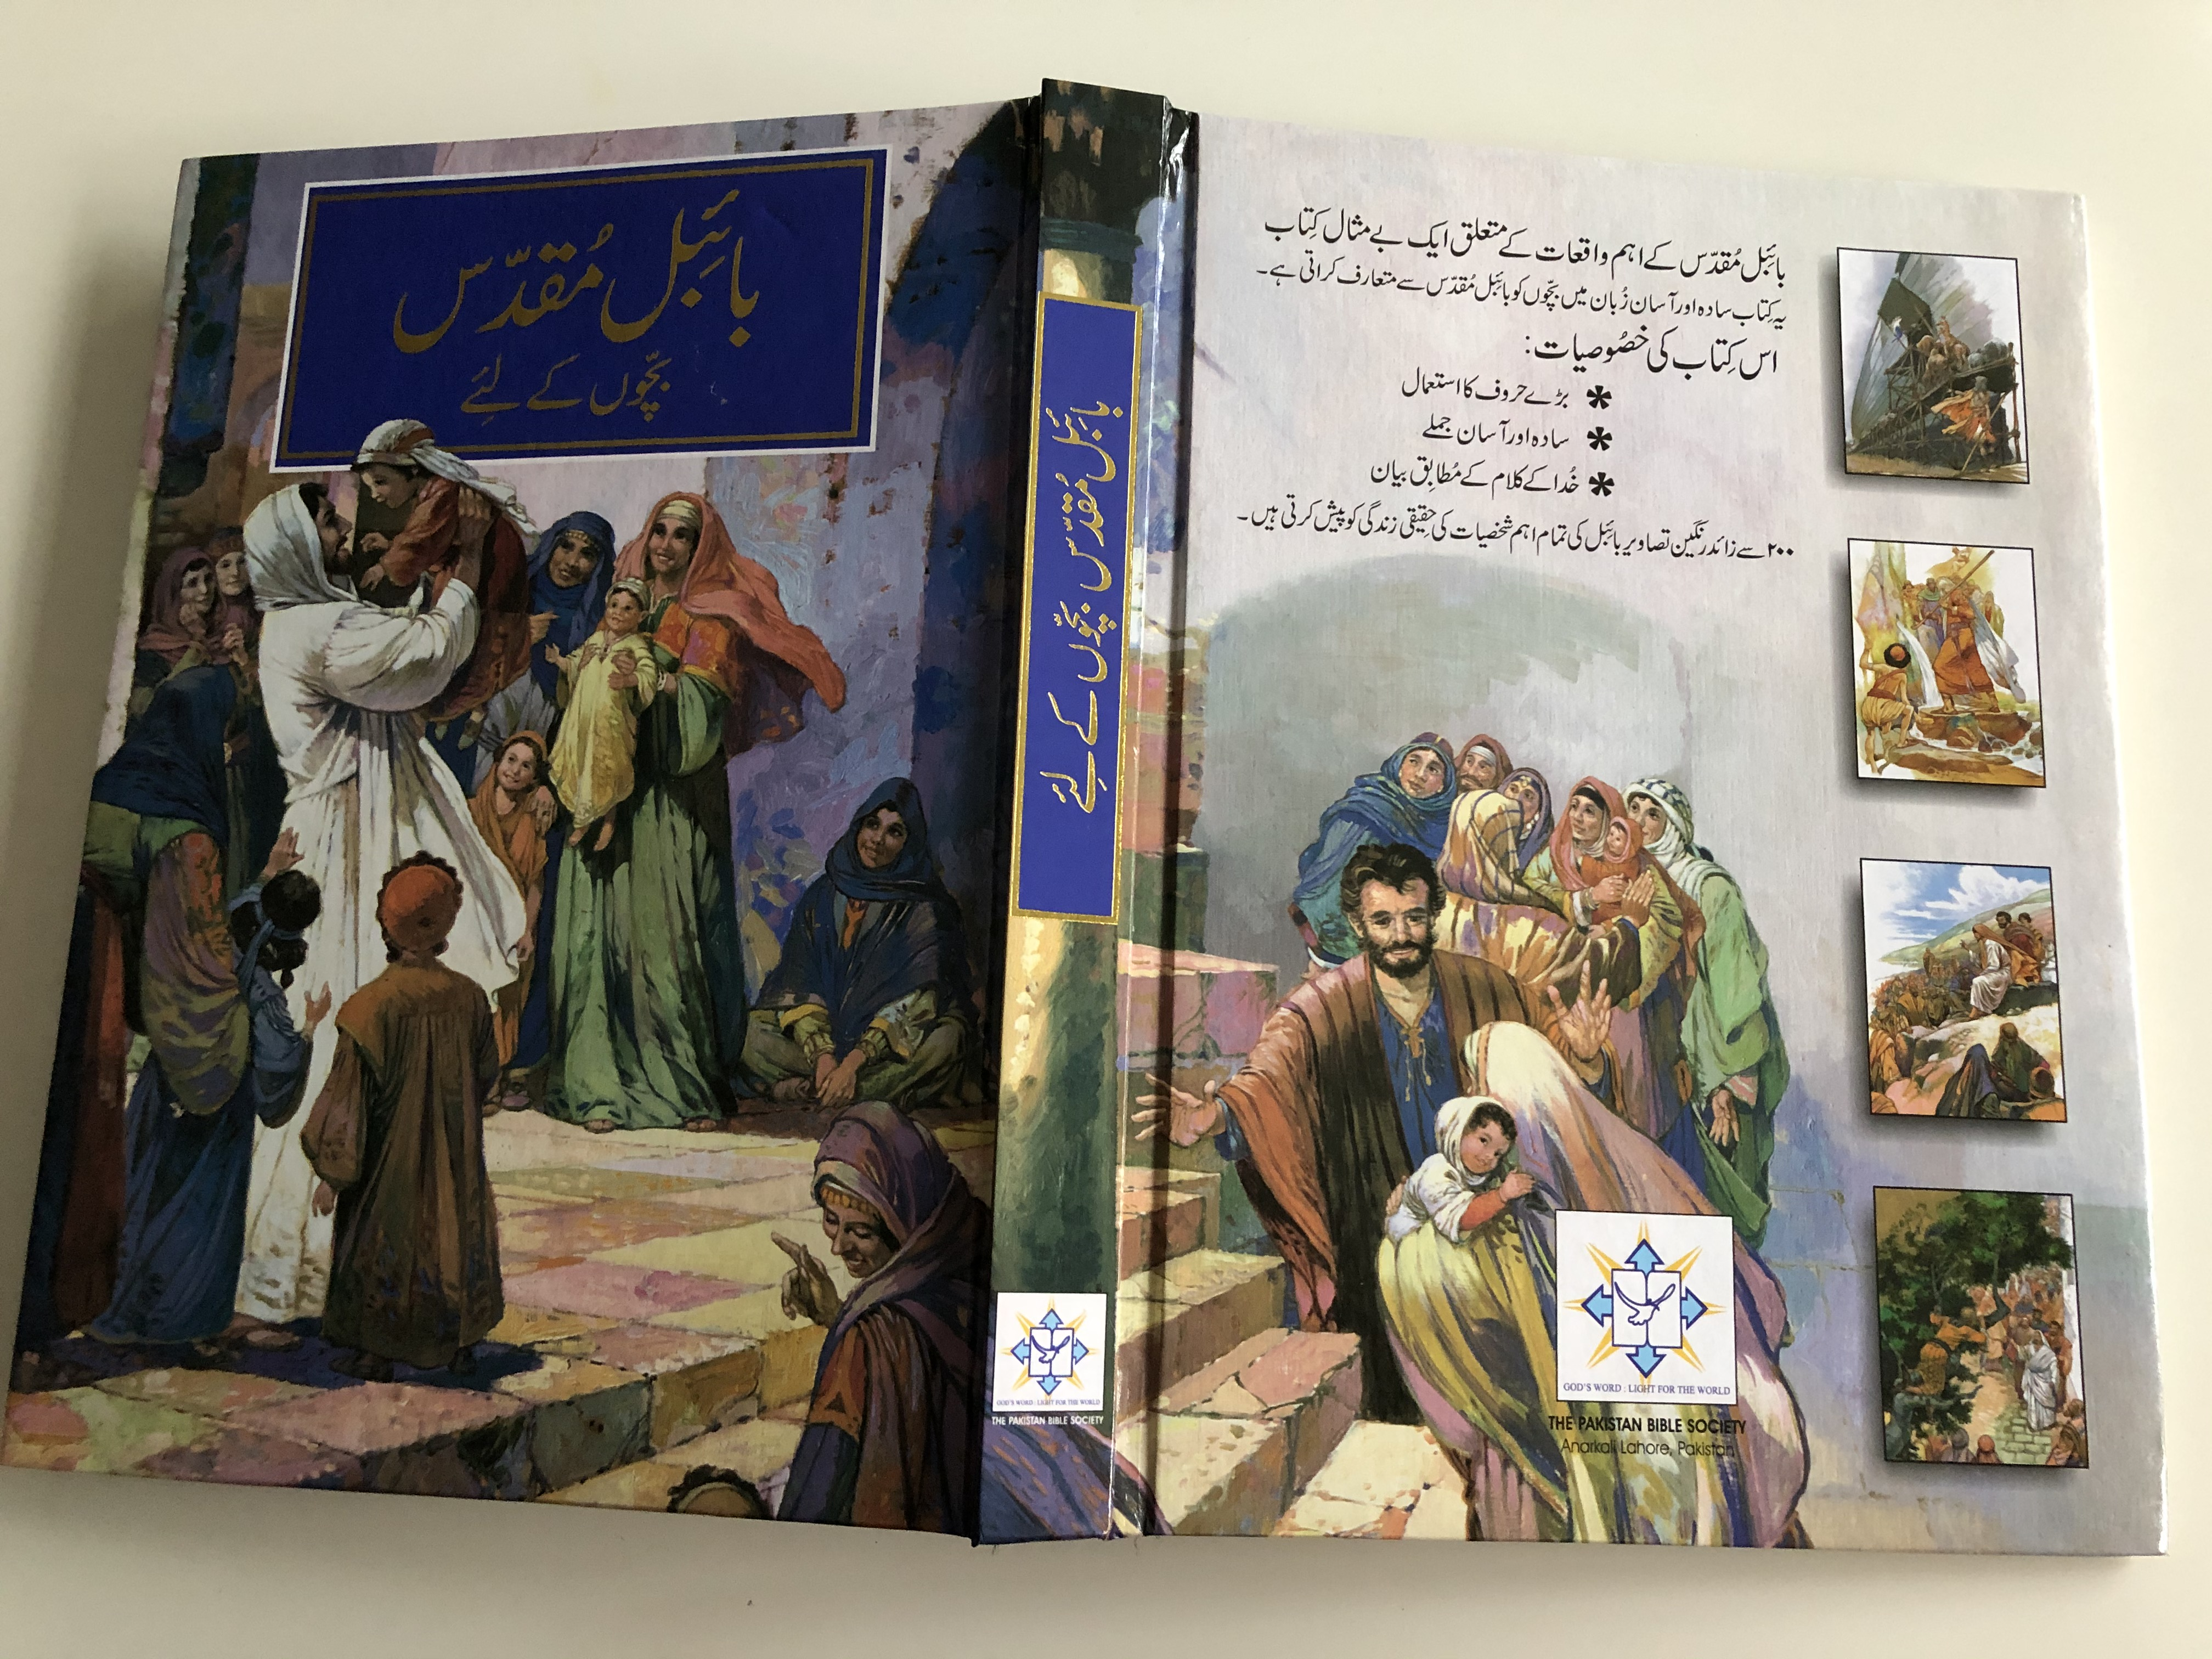 -the-children-s-bible-in-urdu-persian-pakistan-bible-society-2019-illustrated-by-jose-montero-13-.jpg